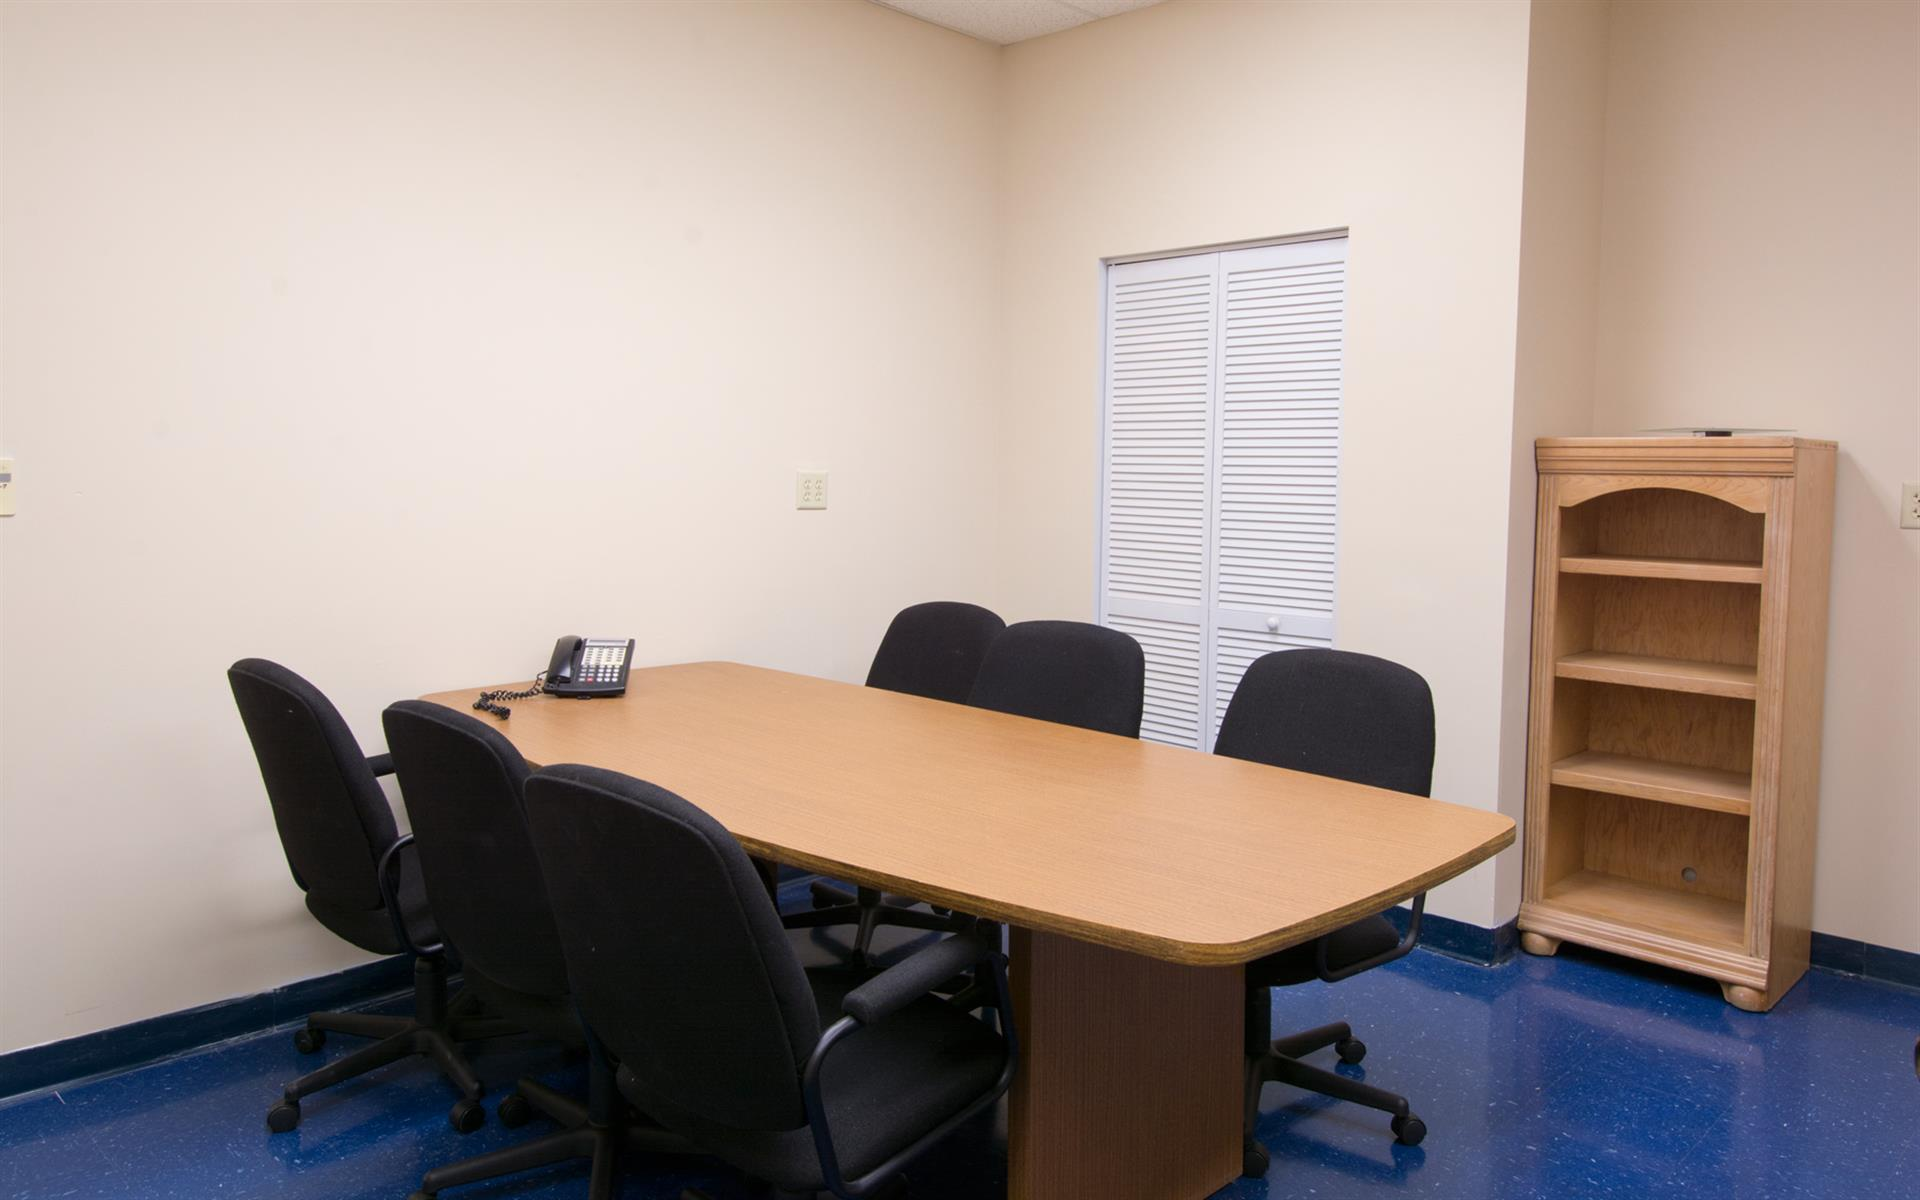 Suite 4K Studios - 6 person conference room